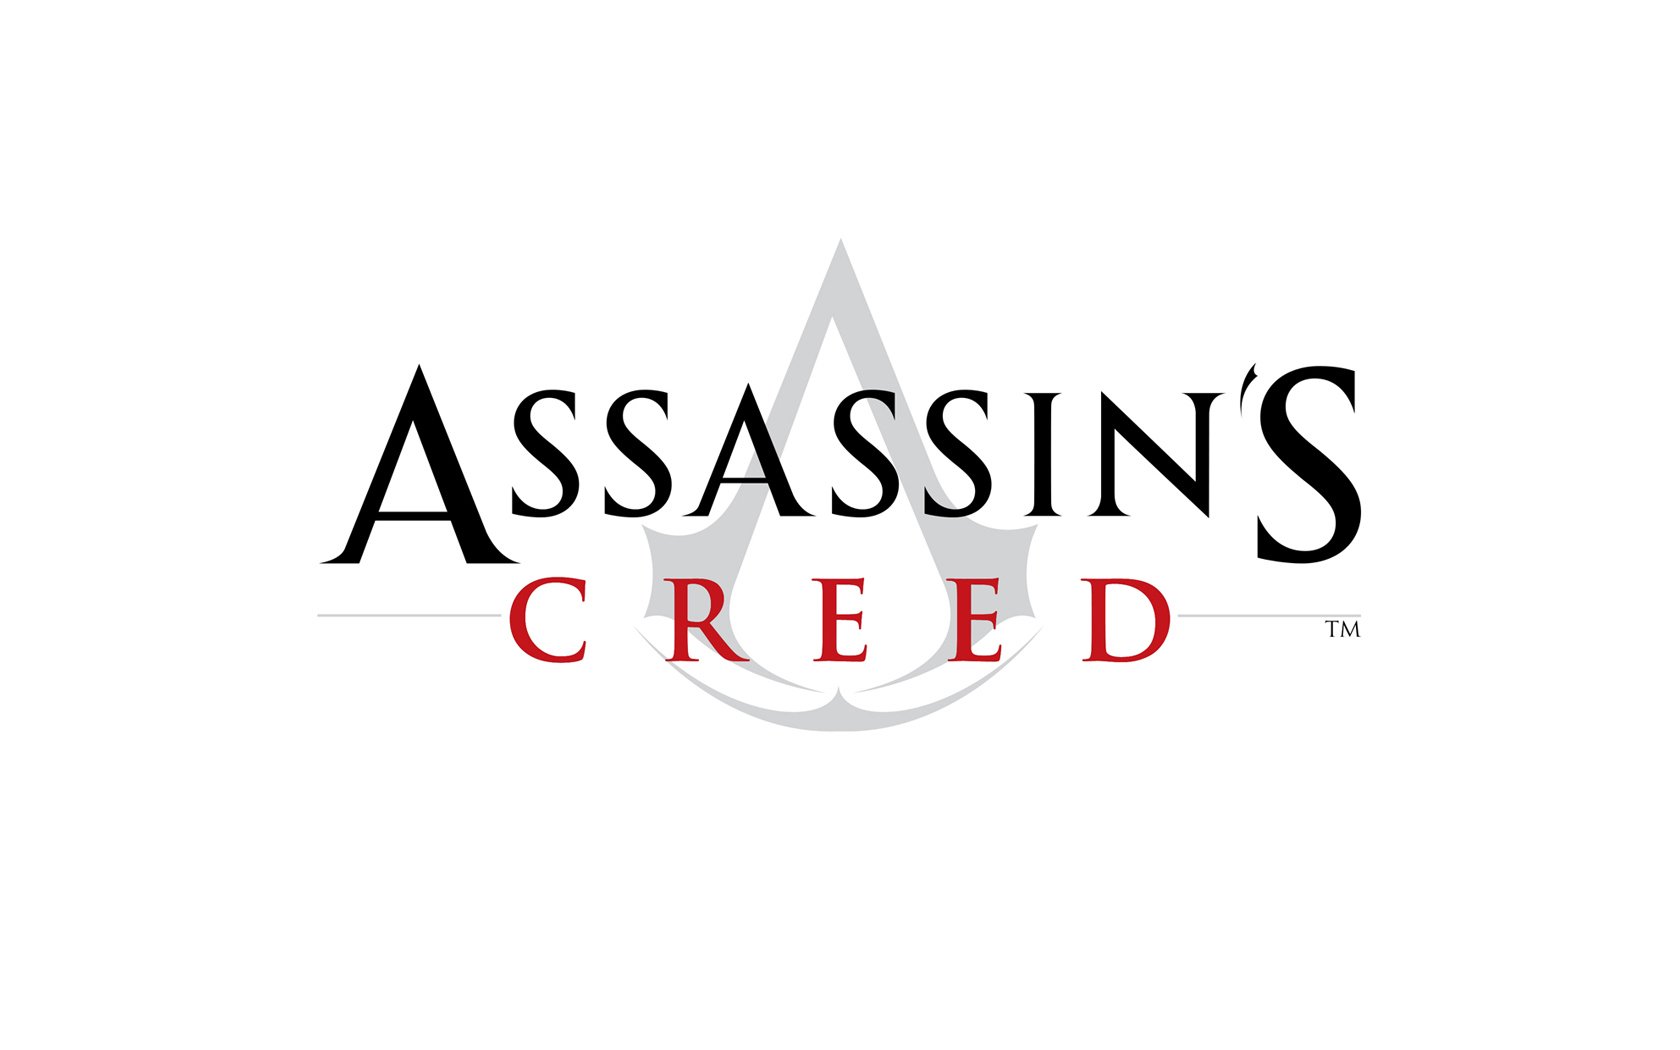 Speculating Future Settings for Assassin's Creed